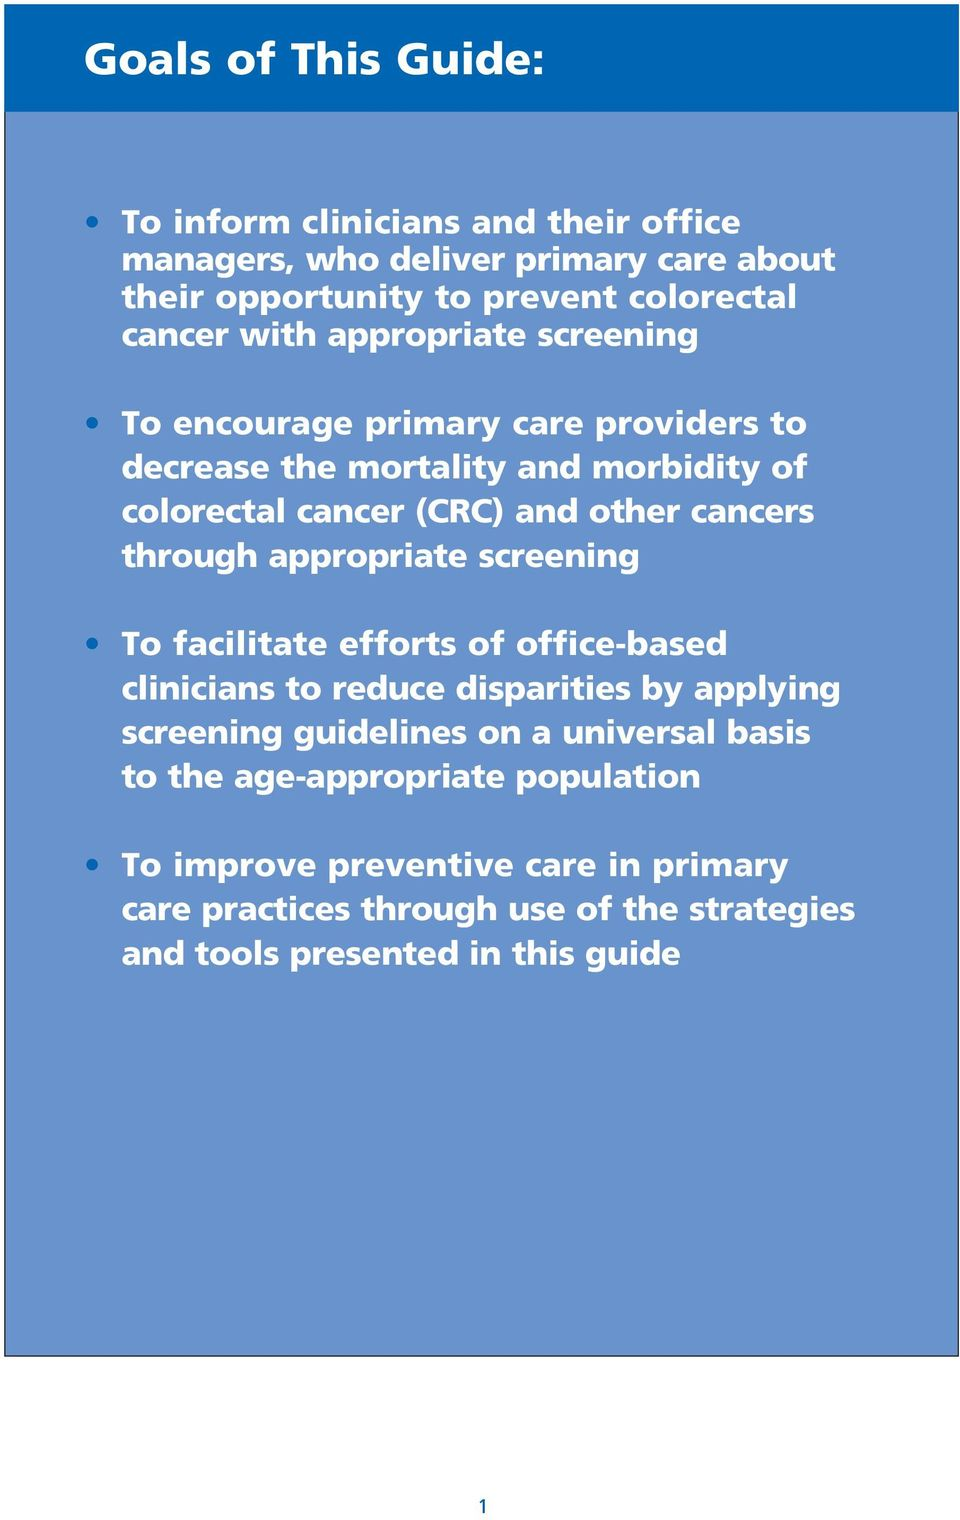 through appropriate screening to facilitate efforts of office-based clinicians to reduce disparities by applying screening guidelines on a universal